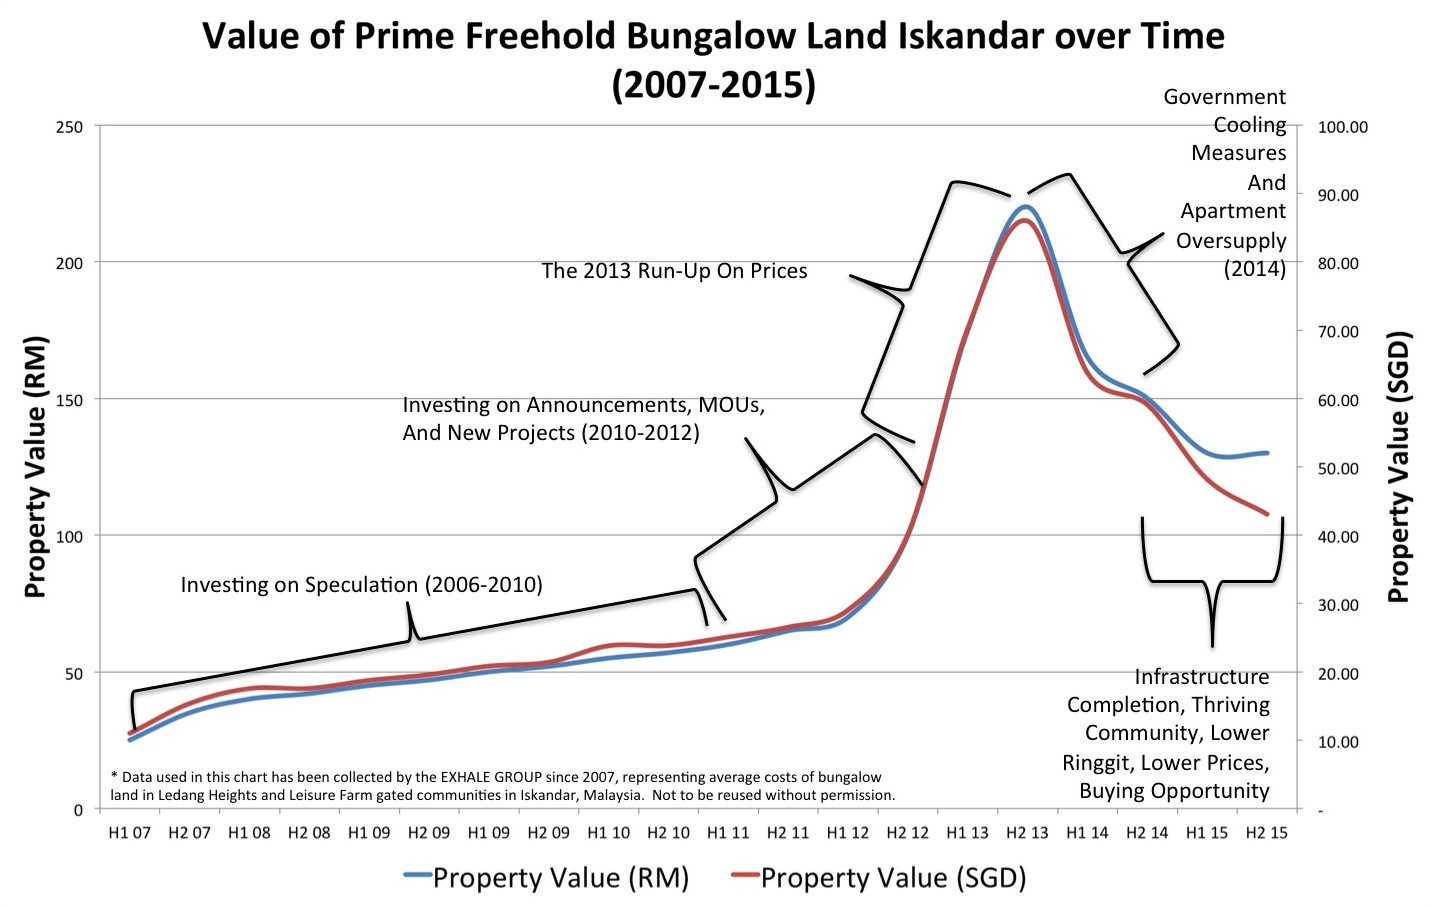 Value of Iskandar Bungalow Land